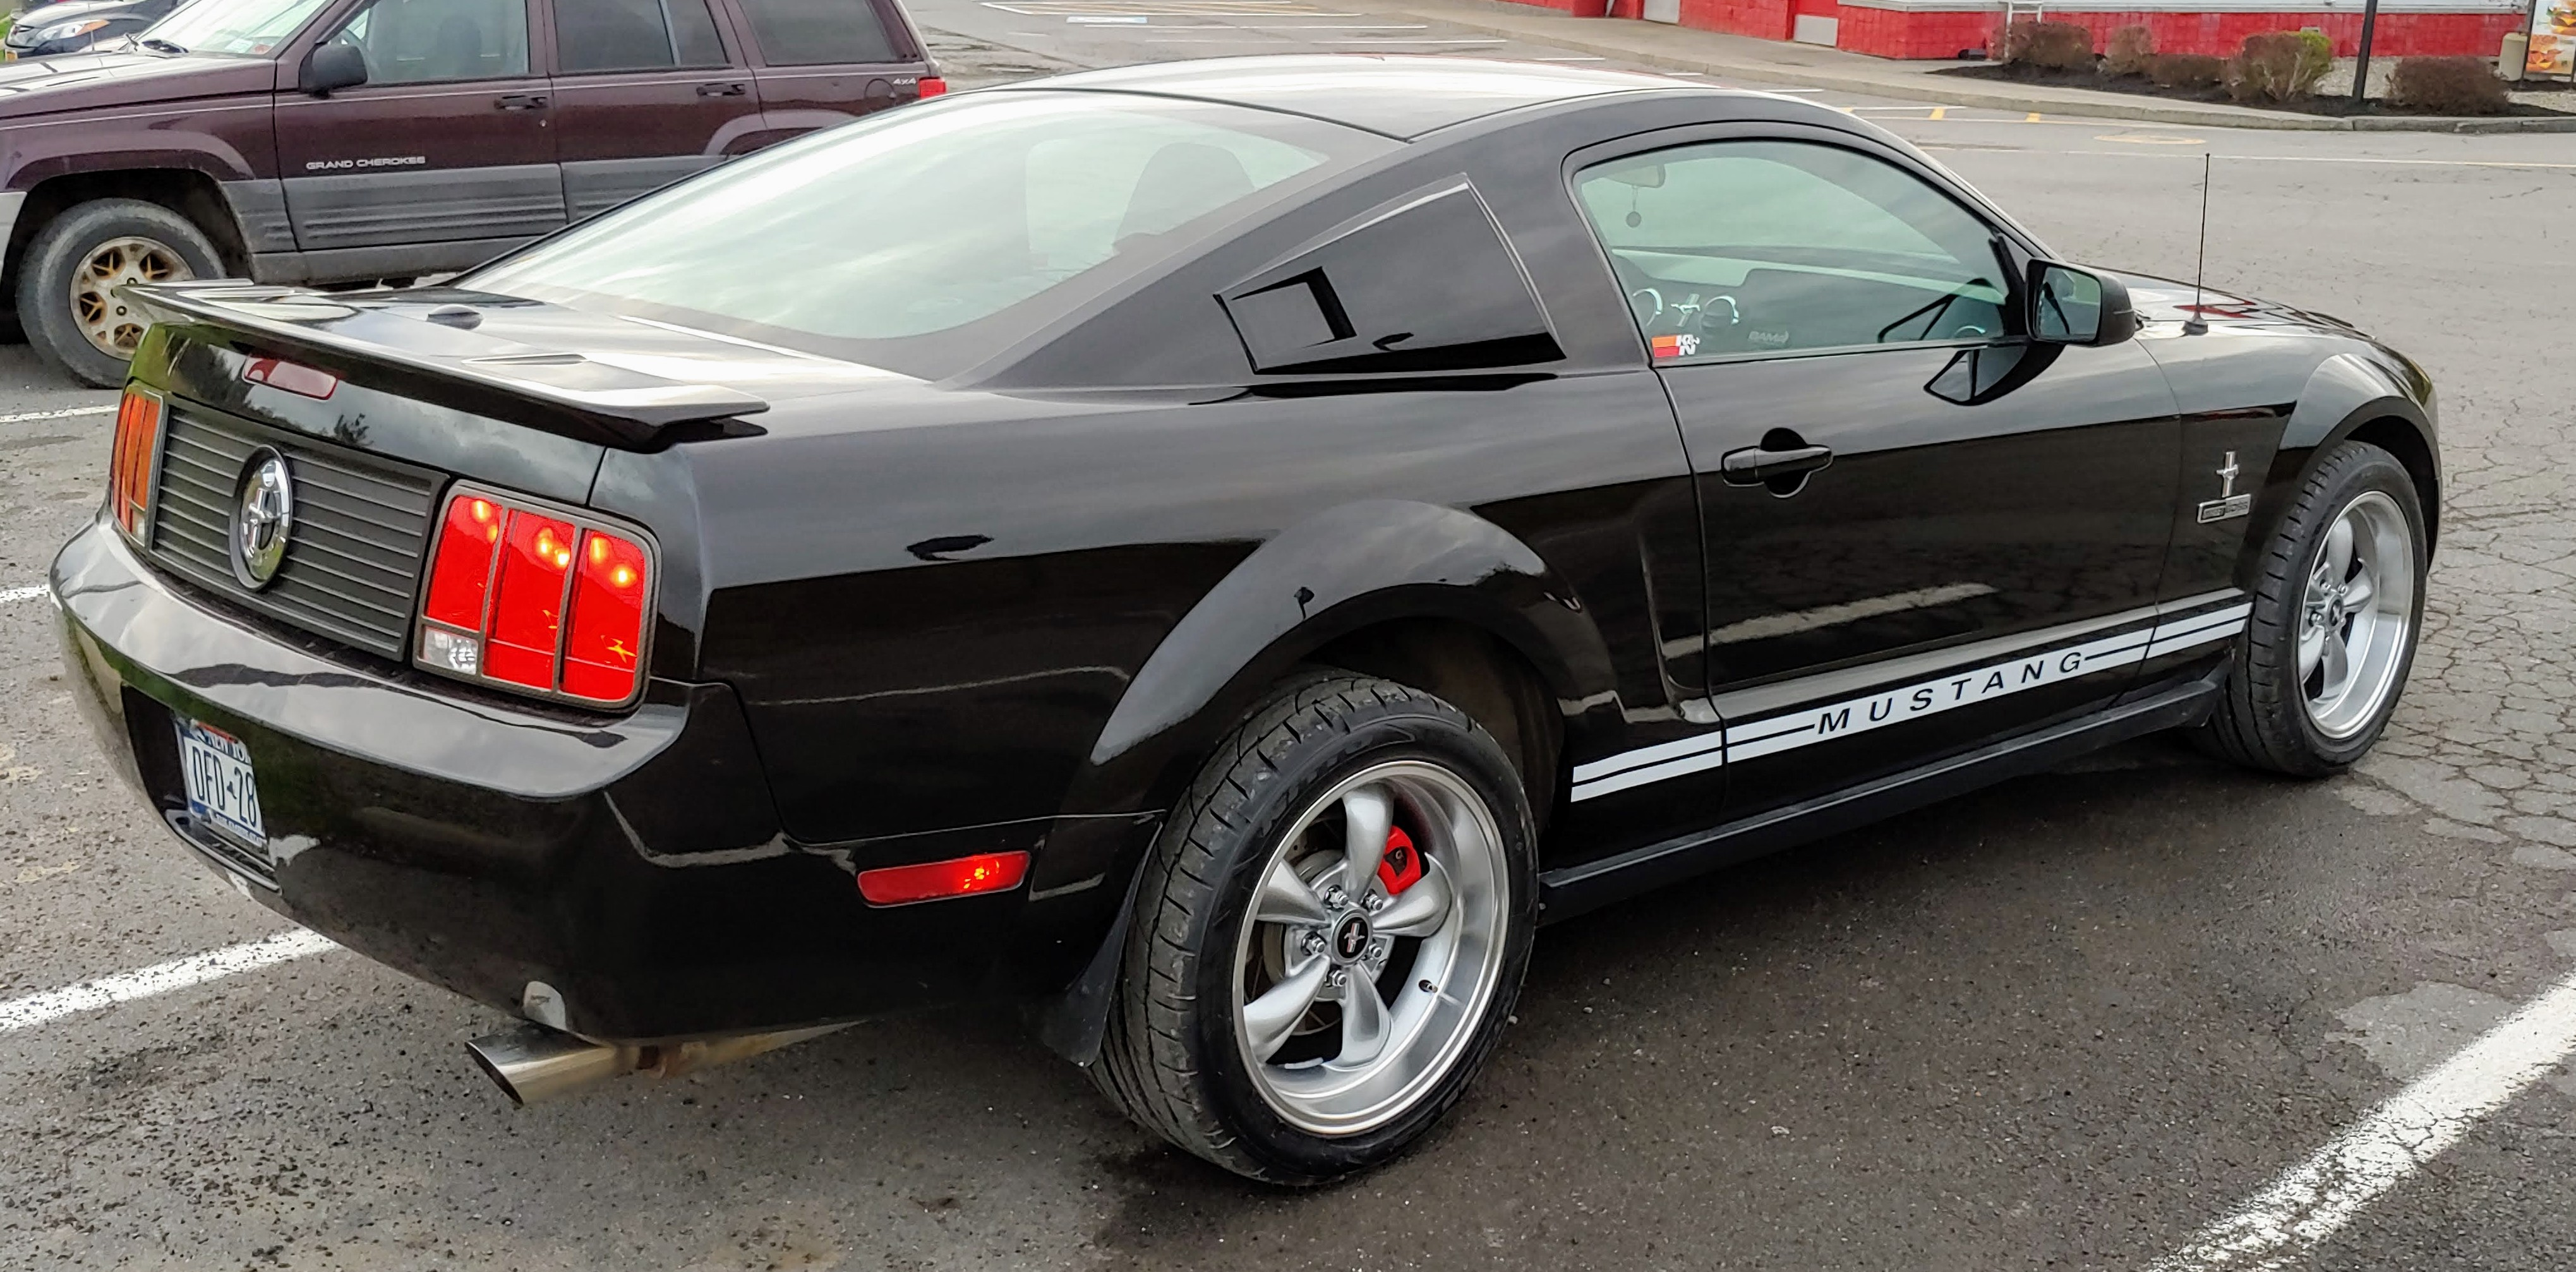 Click image for larger version  Name:mustang 4-30-19.2.jpg Views:24 Size:1.43 MB ID:258333